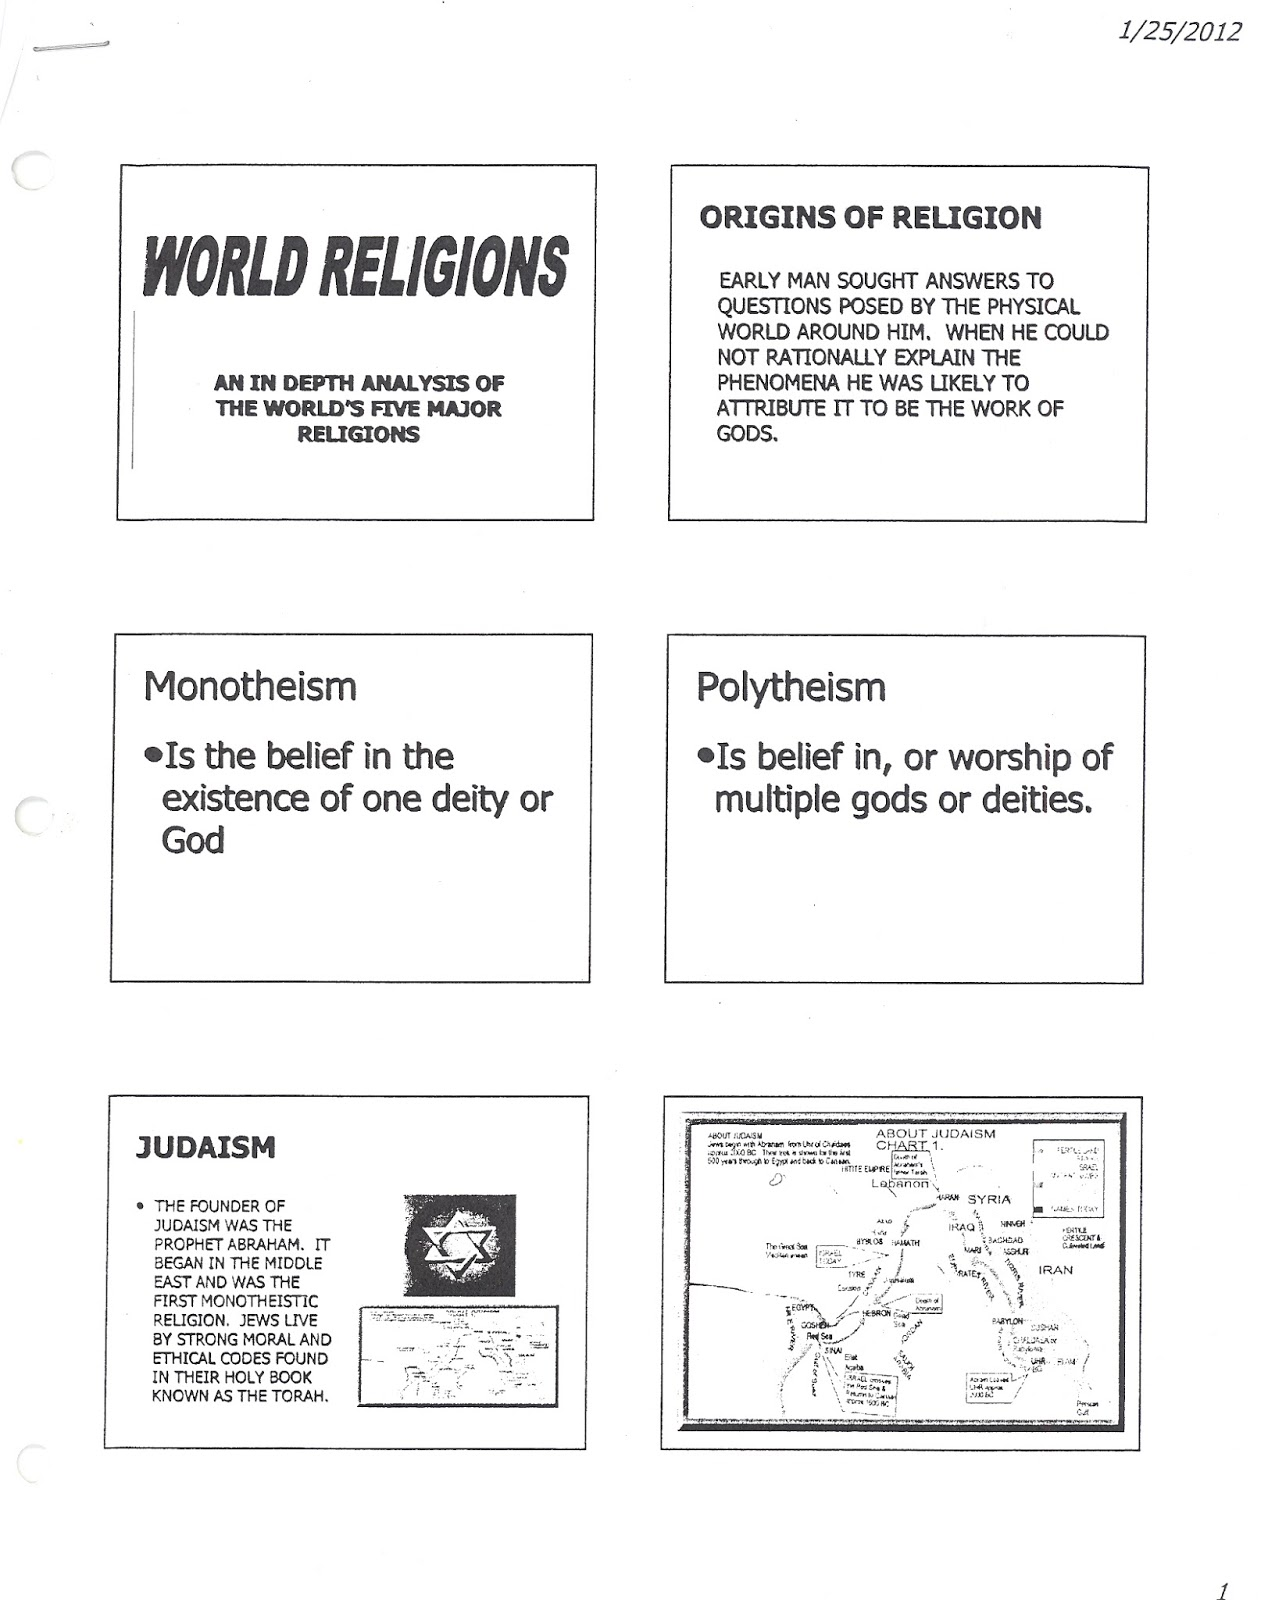 Religion, Science, and the Increasing Conflict over Morality